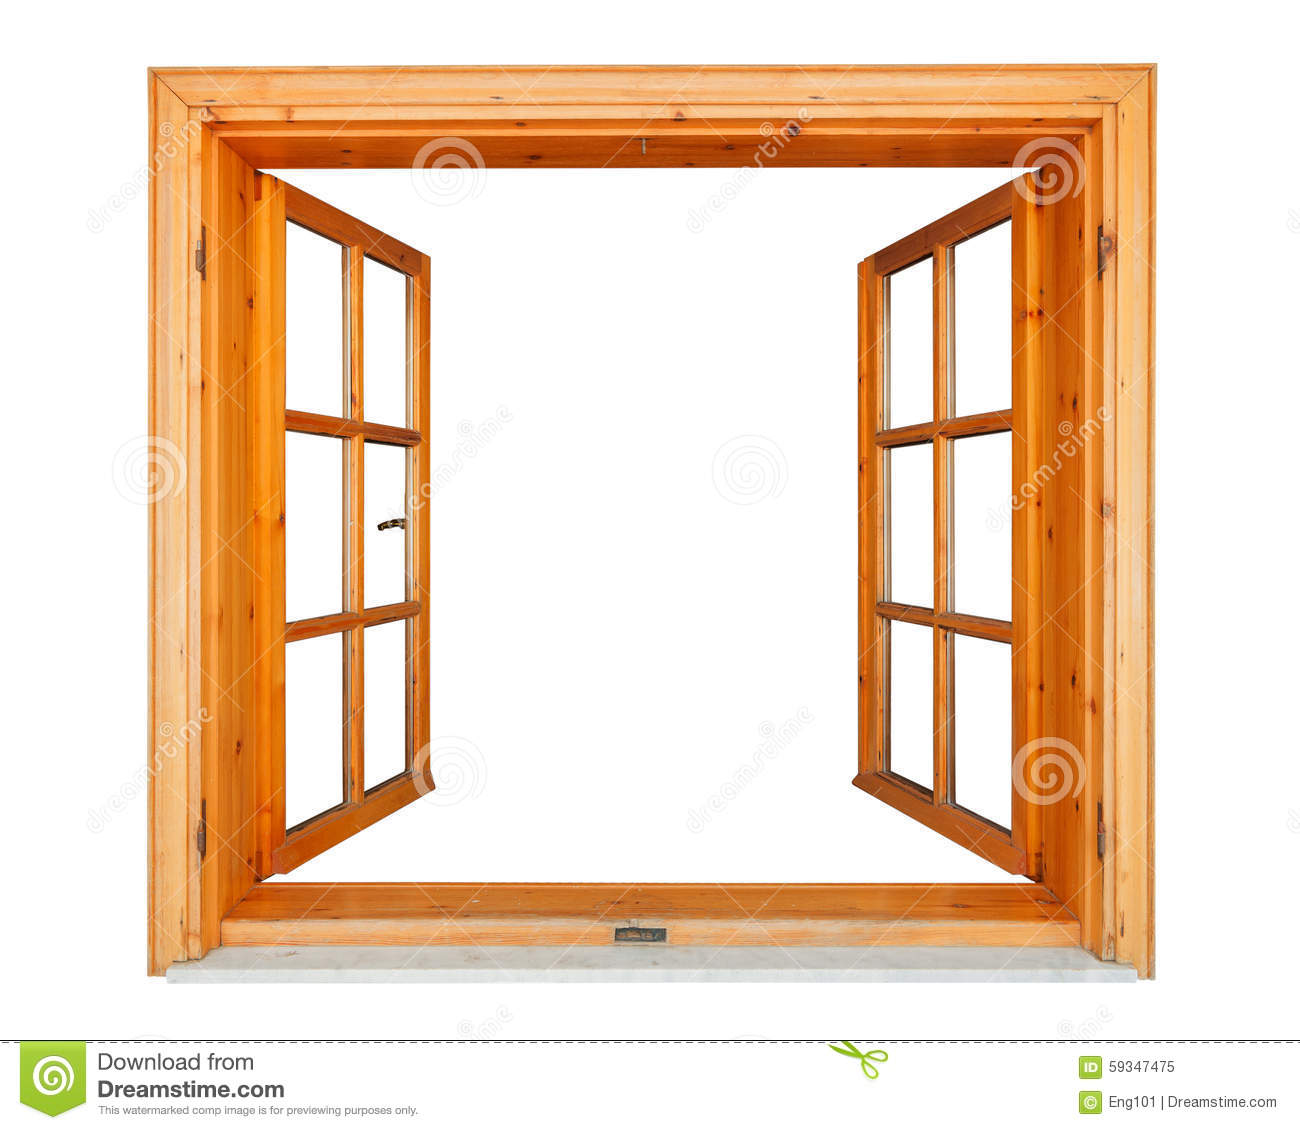 Wooden window open with marble ledge stock photo image for Fenster offen